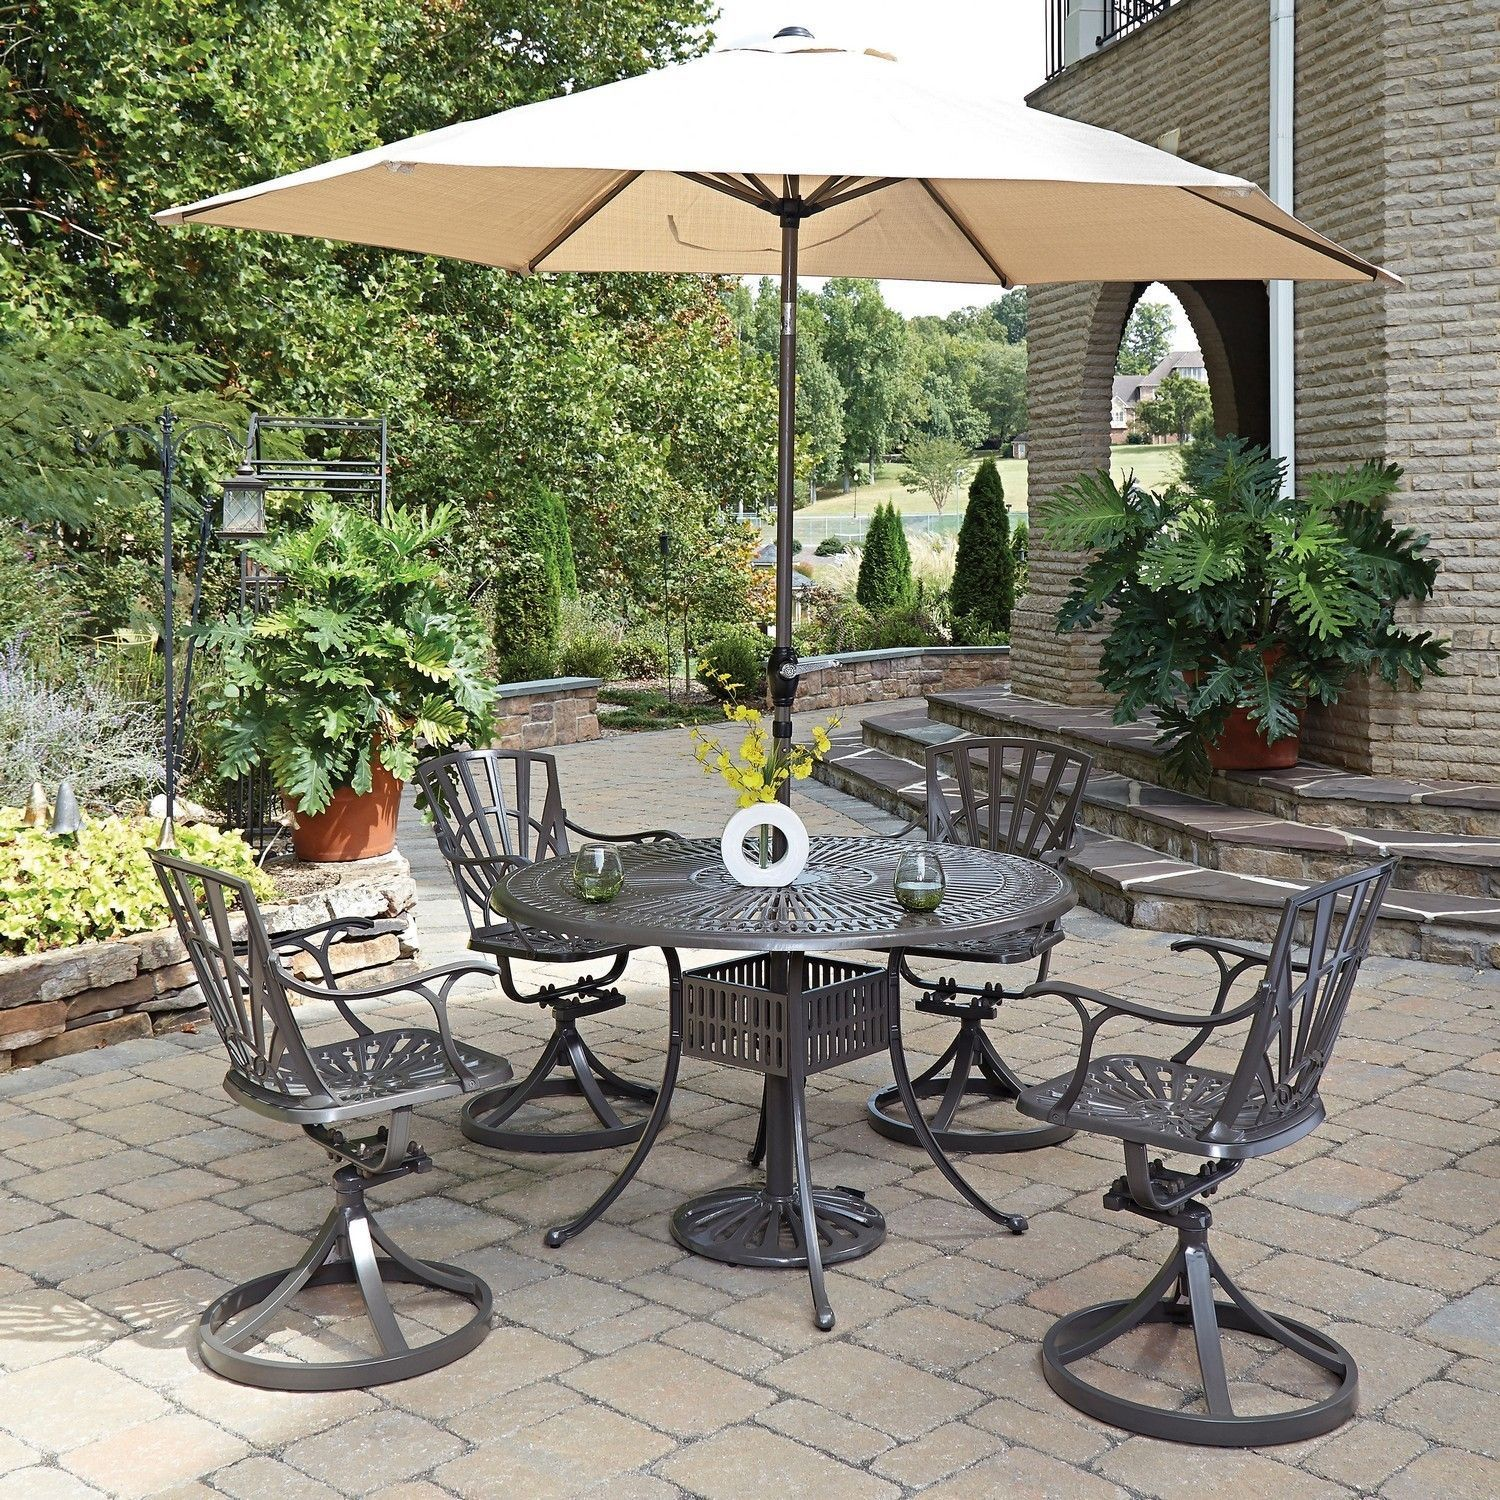 Online Shopping Bedding Furniture Electronics Jewelry Clothing More Outdoor Dining Set Patio 7 Piece Dining Set